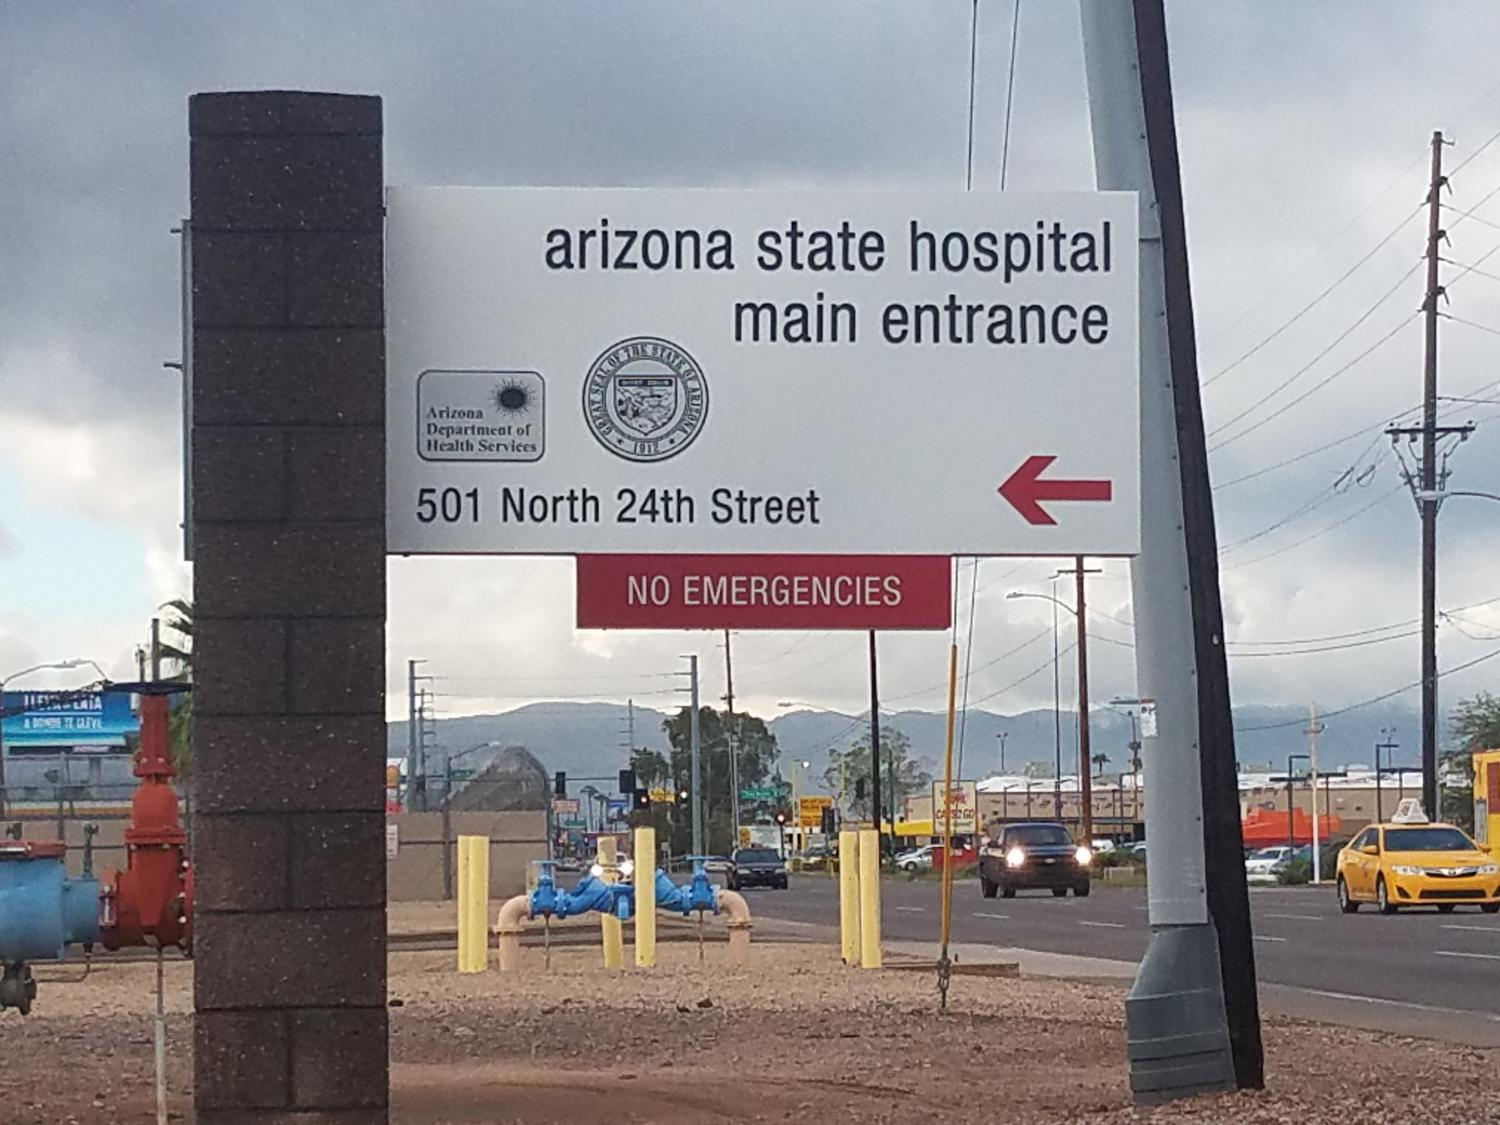 entrance of the Arizona State Hospital